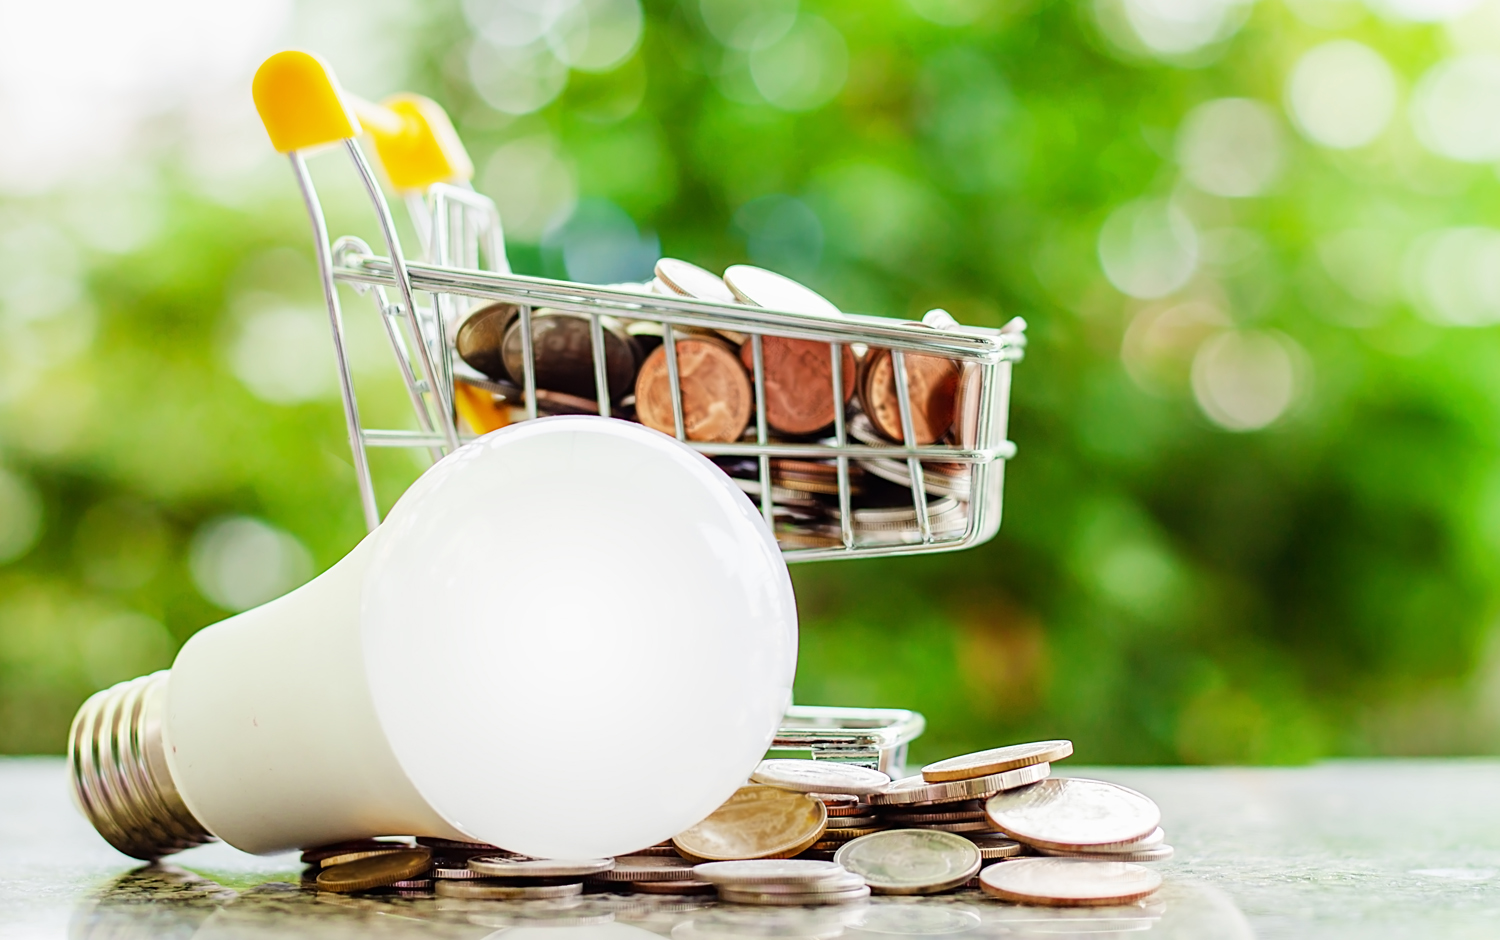 Full of money coin in mini shopping cart or trolley with led lamp and glowing light bulb against blurred natural green background for finance, saving energy and environment concept